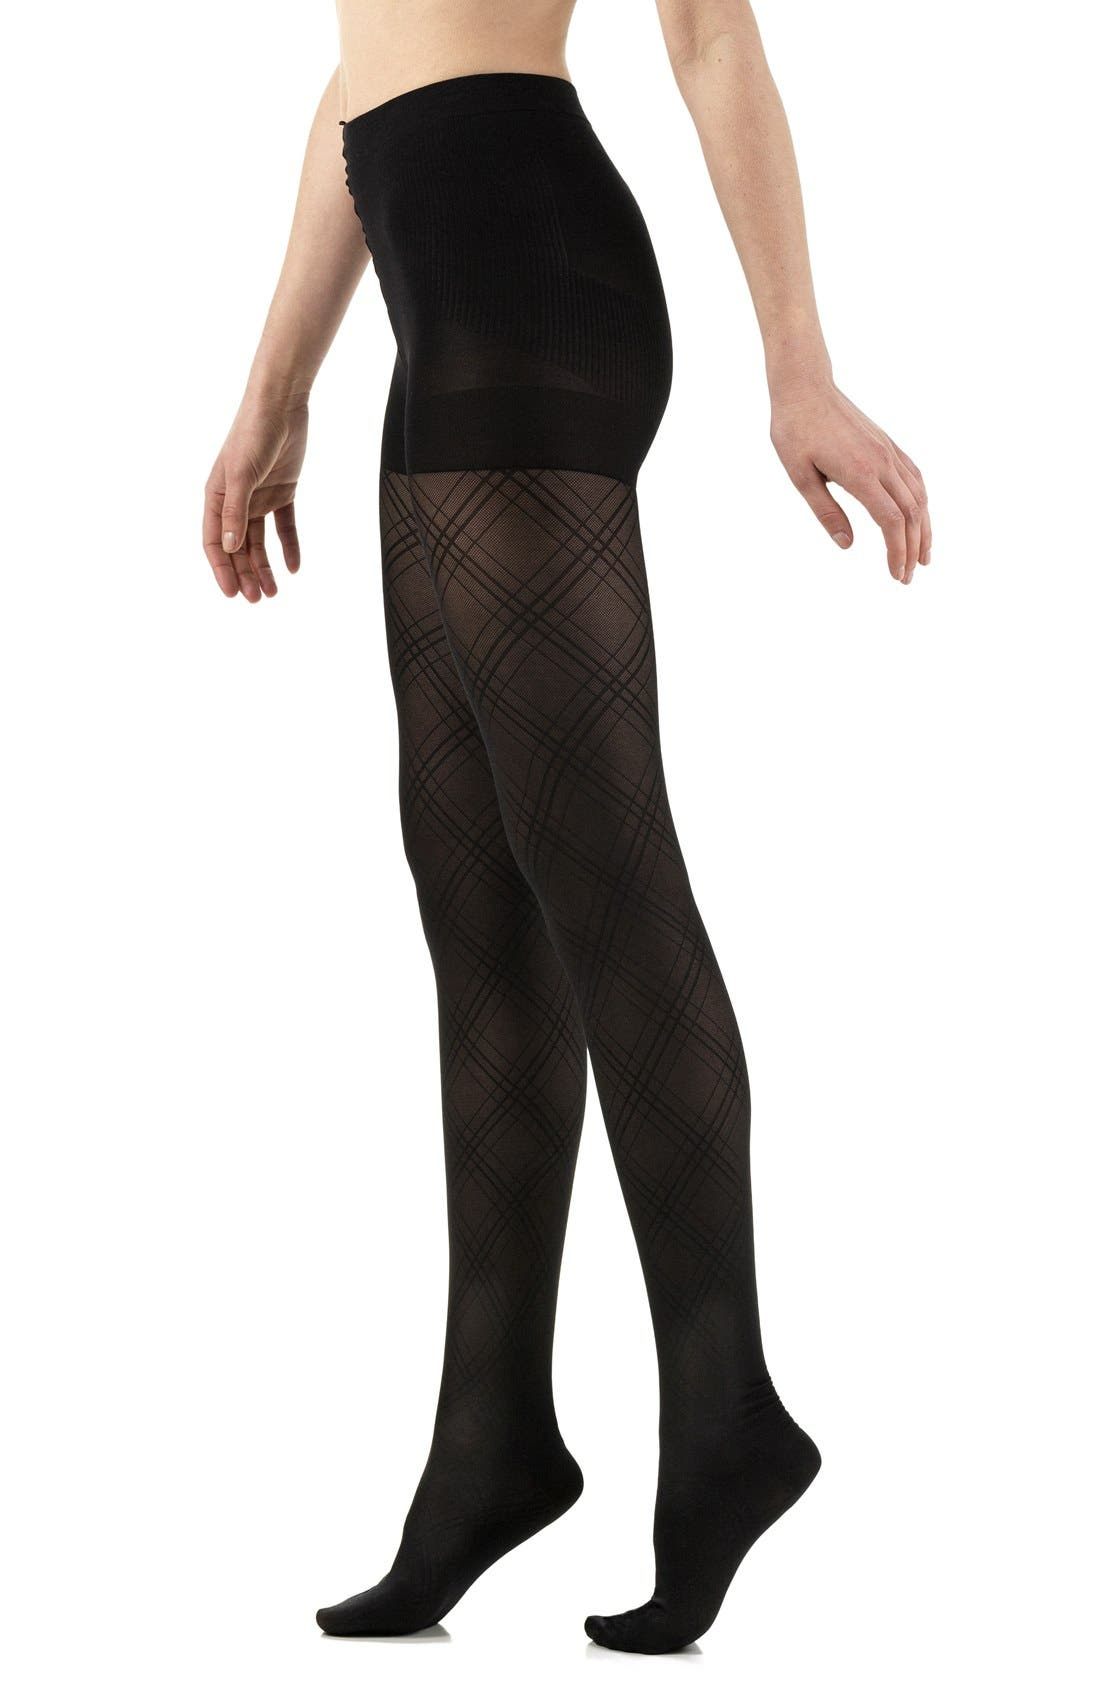 Main Image - VIM & VIGR Opaque Argyle Compression Tights